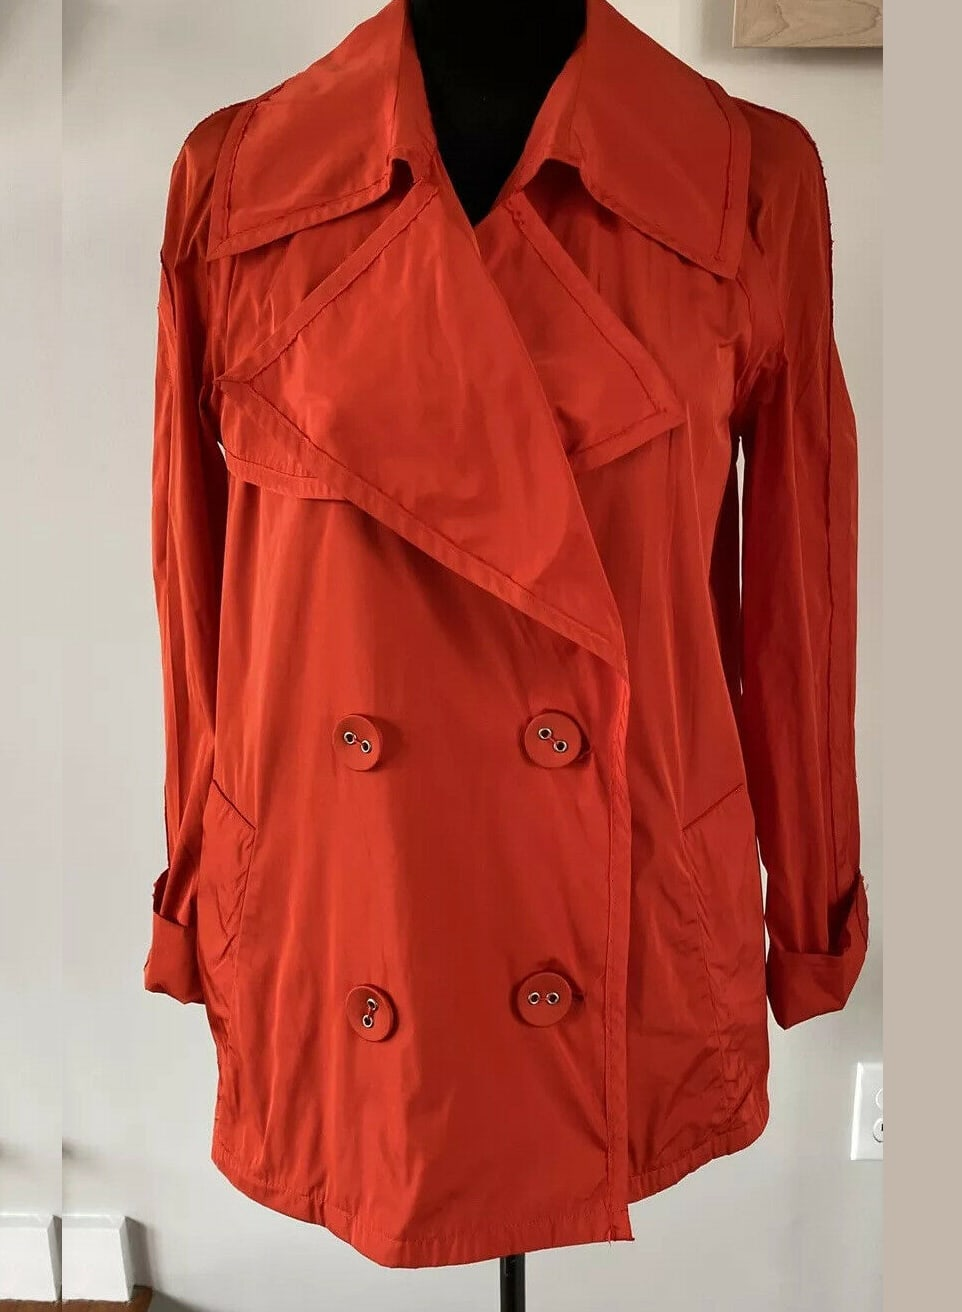 Lanvin Ete 2004, Red Rain Coat, Double Breasted, Size 38